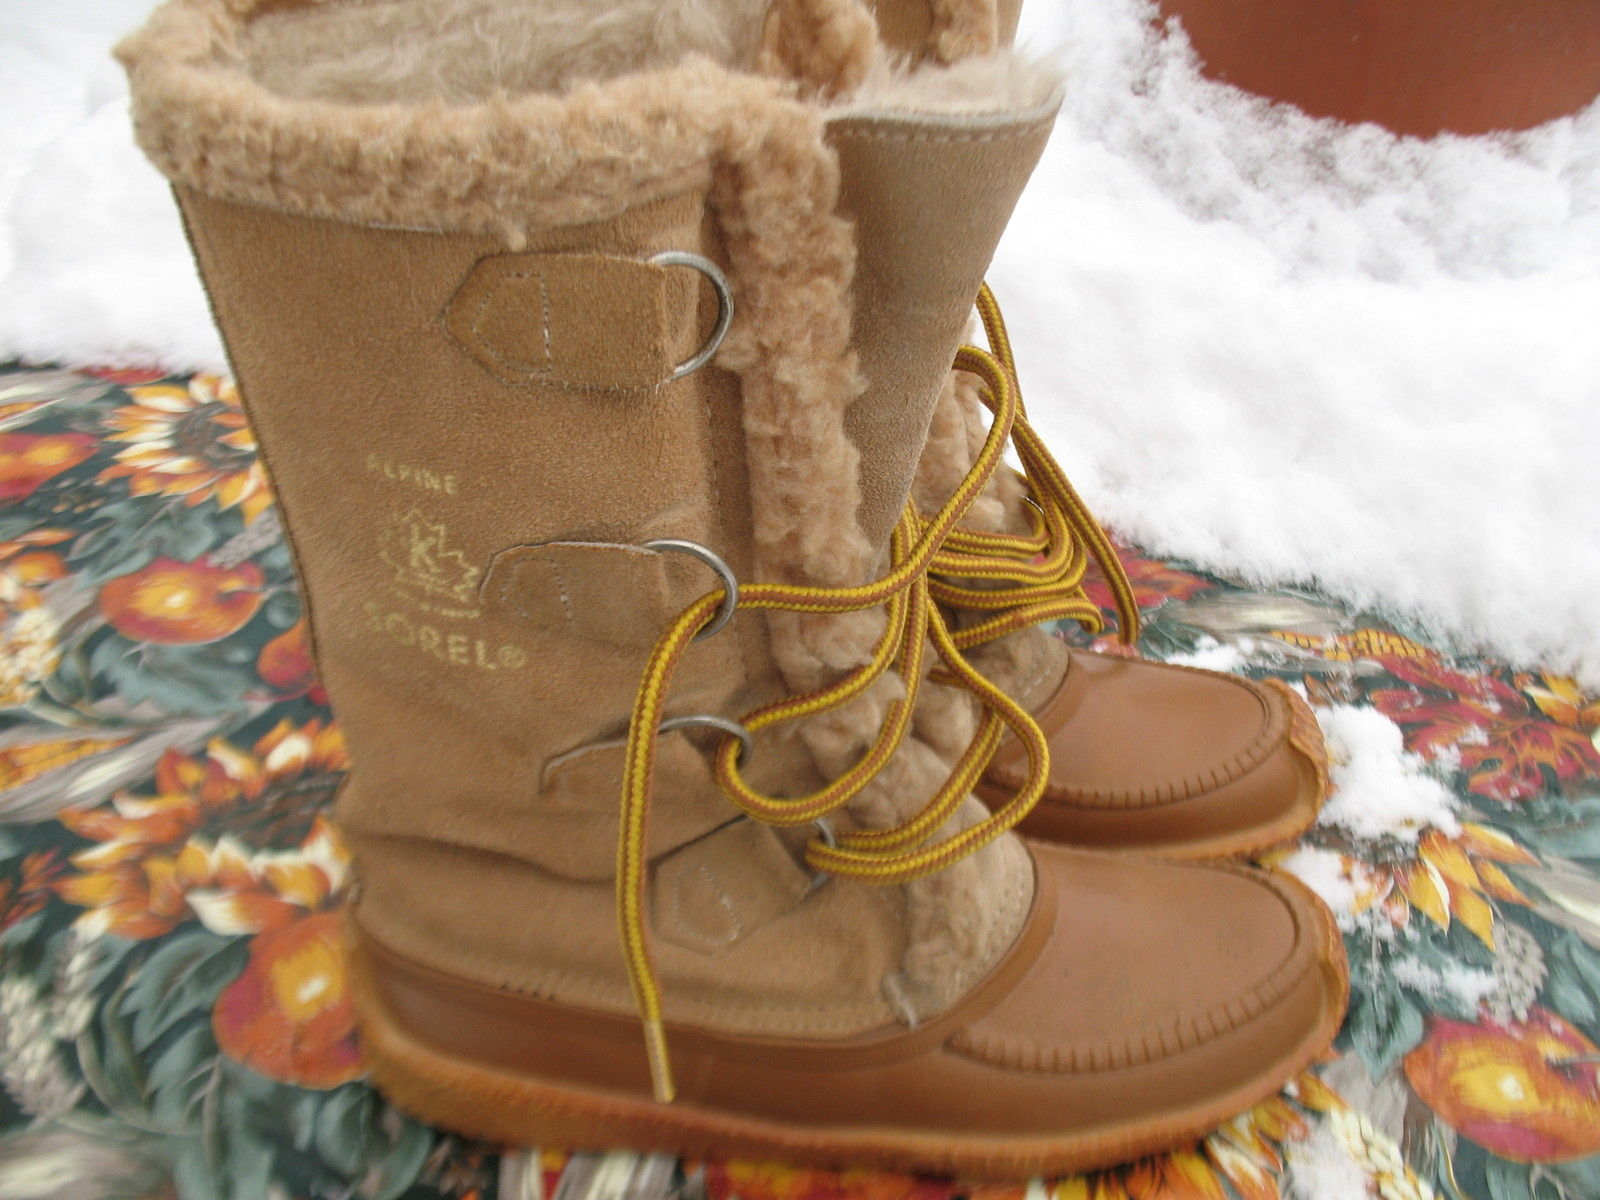 Alpine winter snow boots mukluks kaufman size 5 made in canada boots